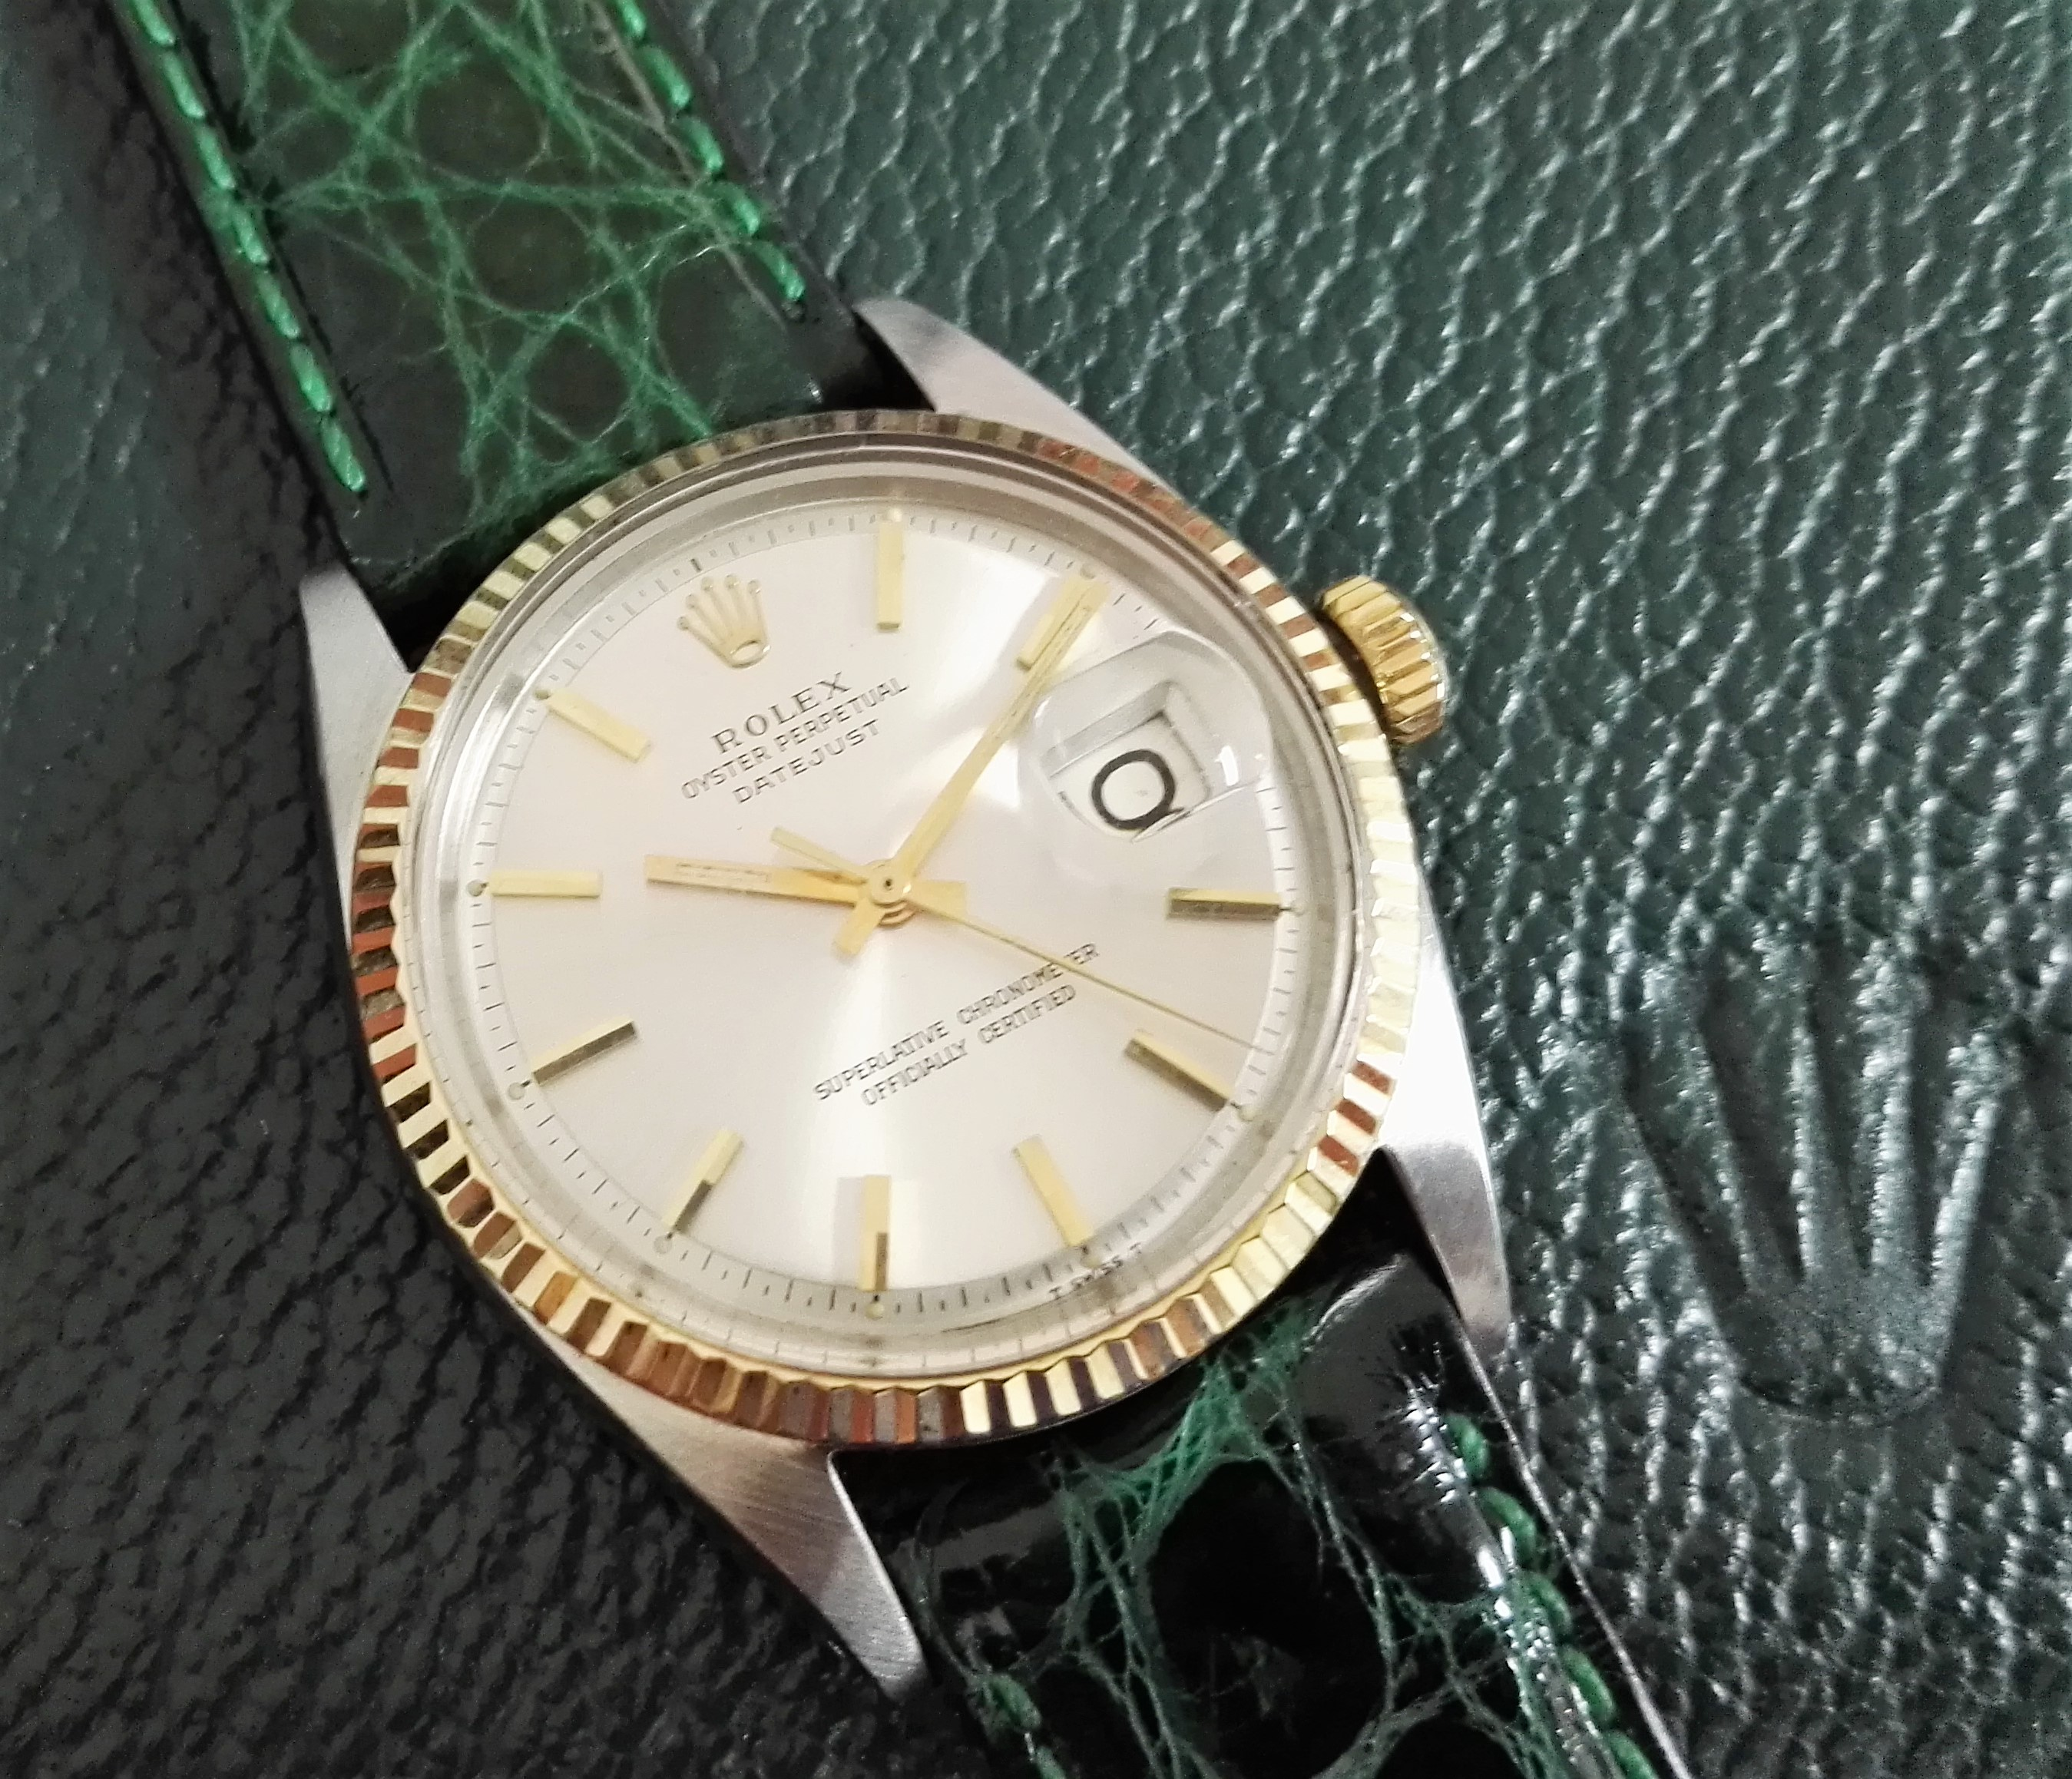 Rolex Datejust Datejust 1601 - 18 Kt Gold/Steel - Silver Dial - Index Gold | San Giorgio a Cremano